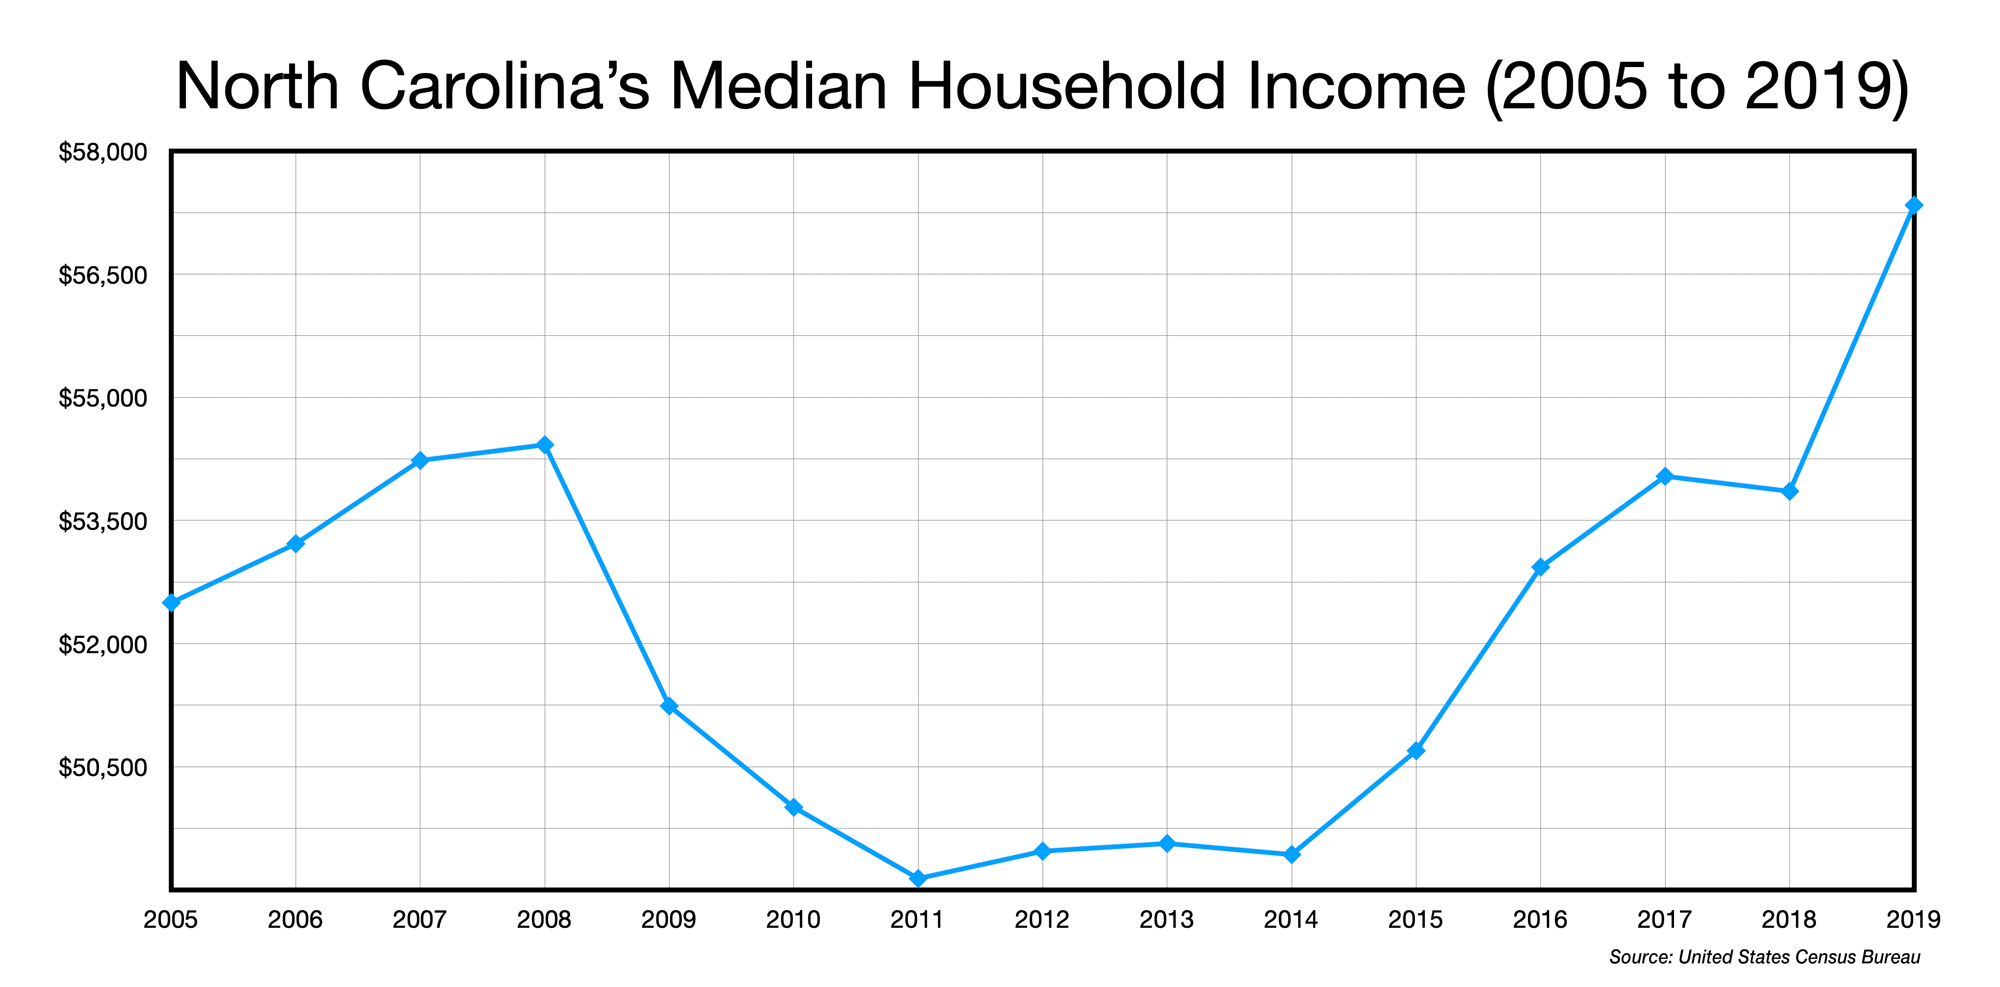 Chart: North Carolina's Median Household Income (2005 to 2019)